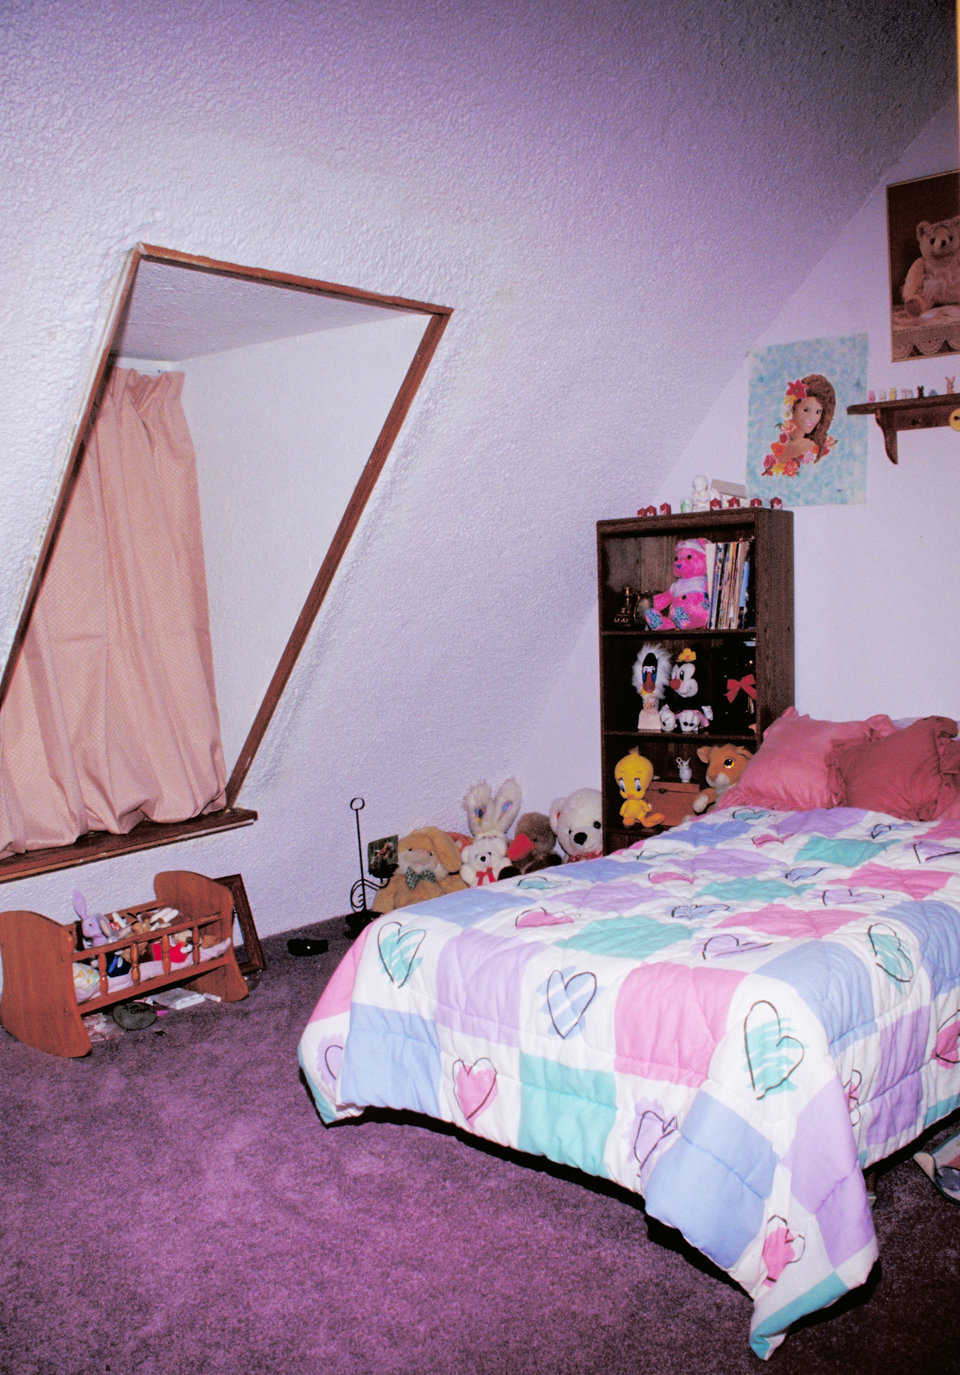 Pink! — It's a girl's bedroom — no doubt about that!